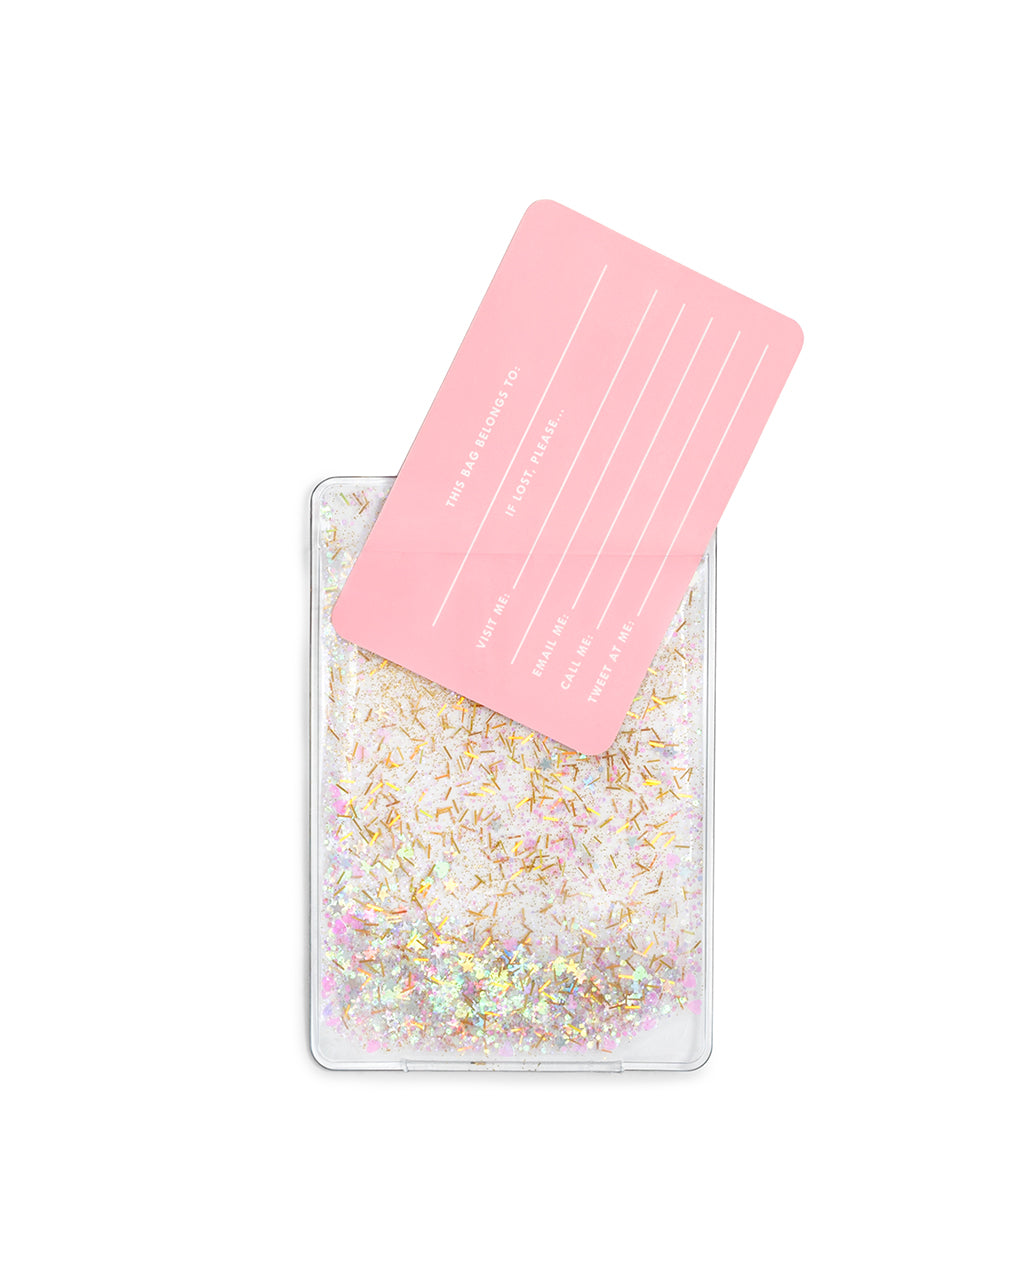 glitter luggage tag shown with pink card with lines for writing personal contact information